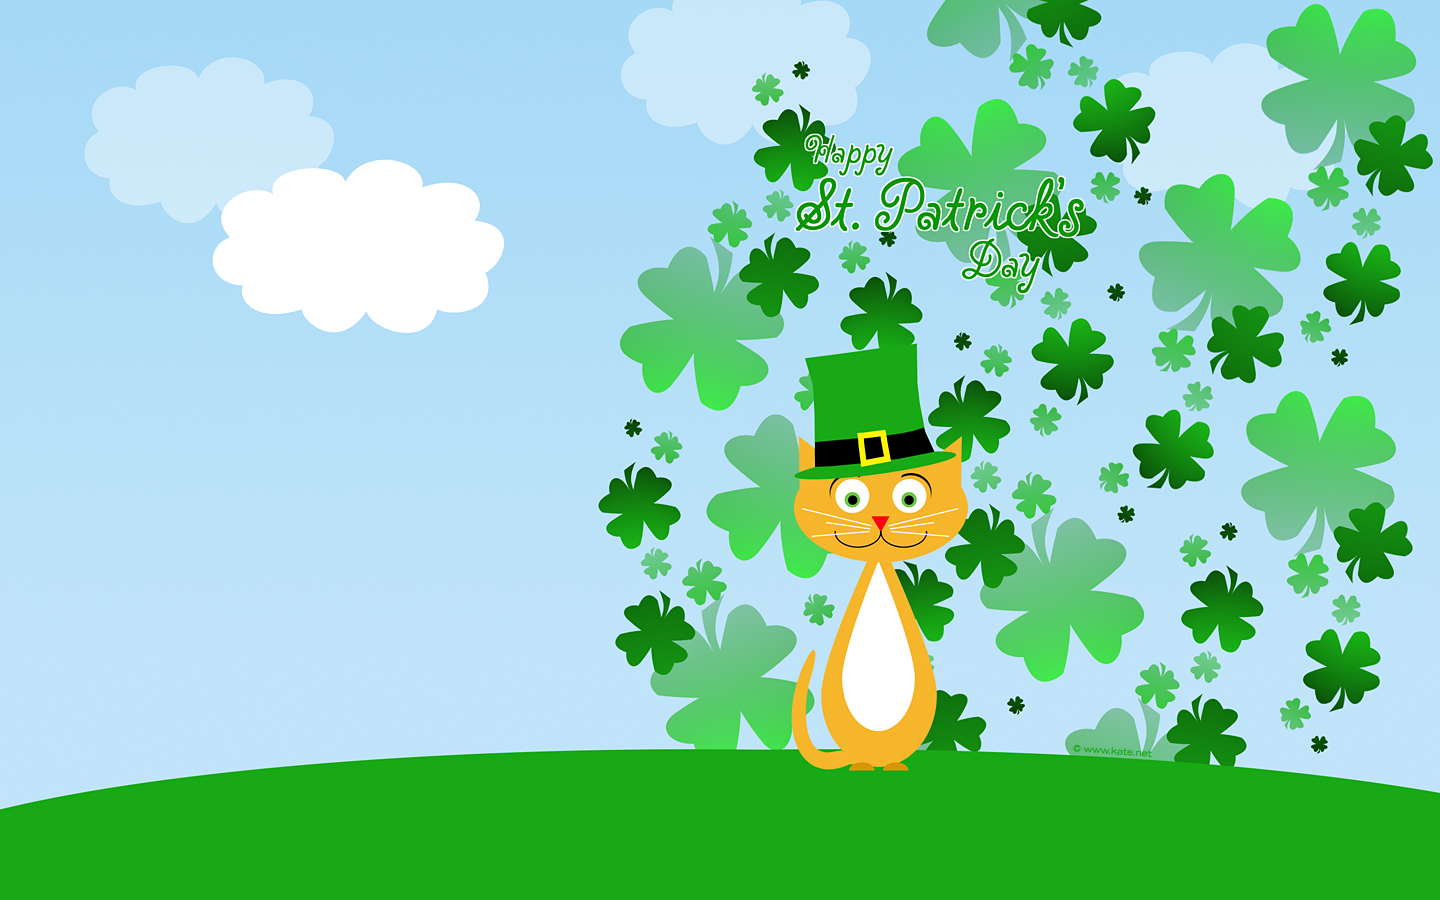 St Patricks Day Wallpapers by Katenet 1440x900